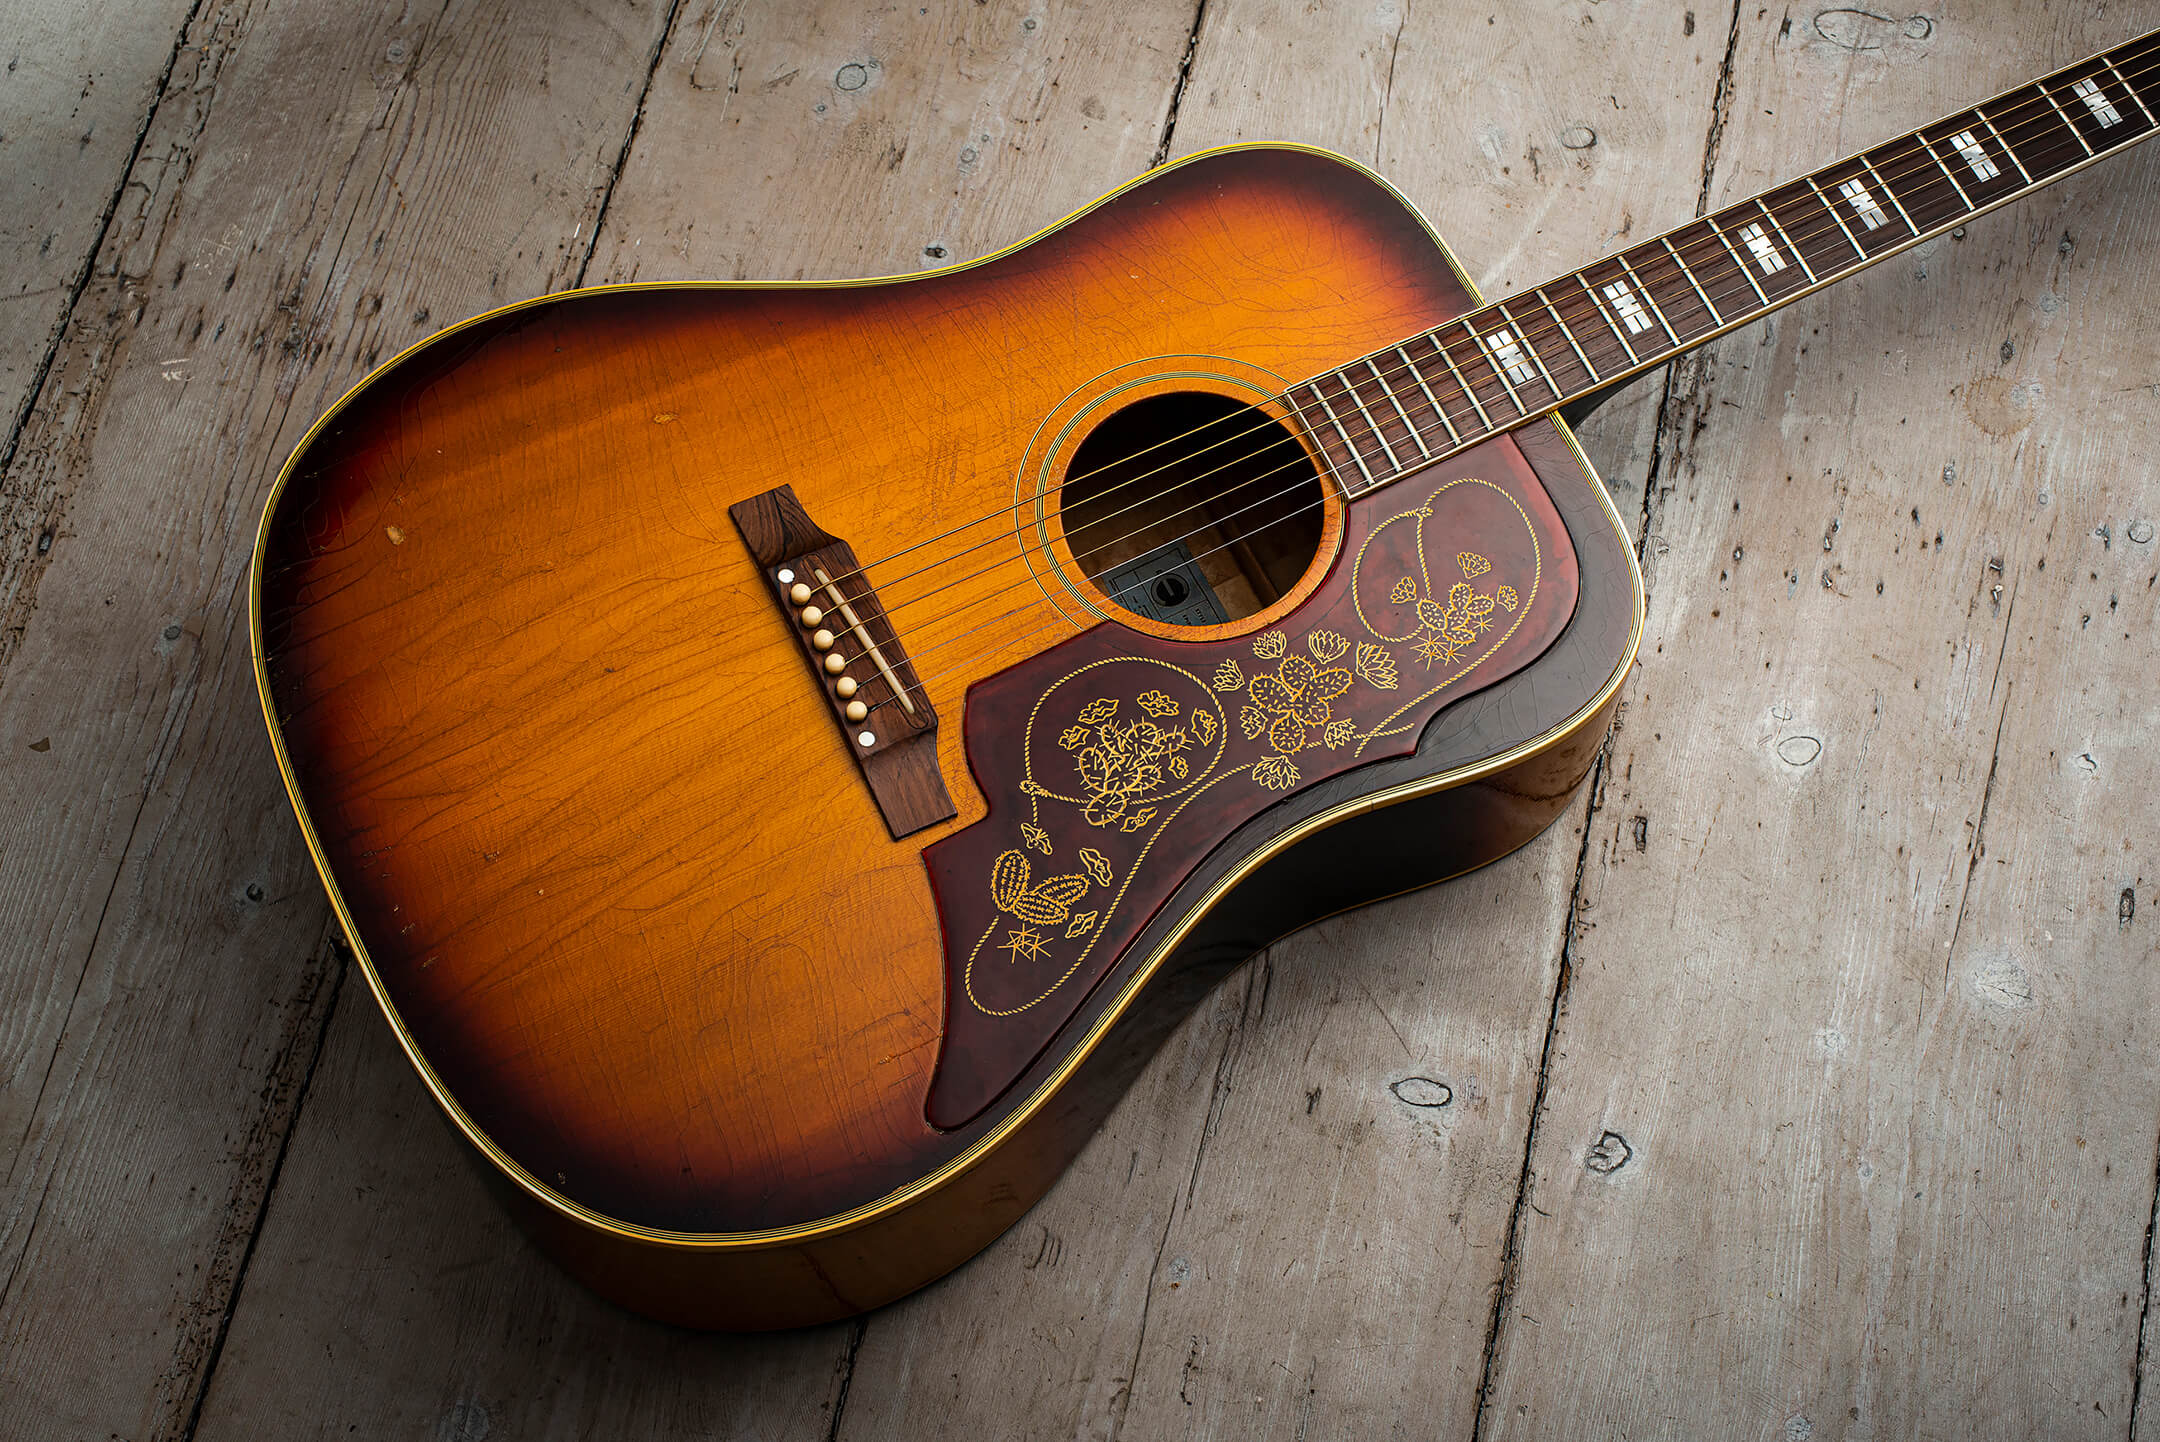 Giles Palmer's 1966 Epiphone Frontier